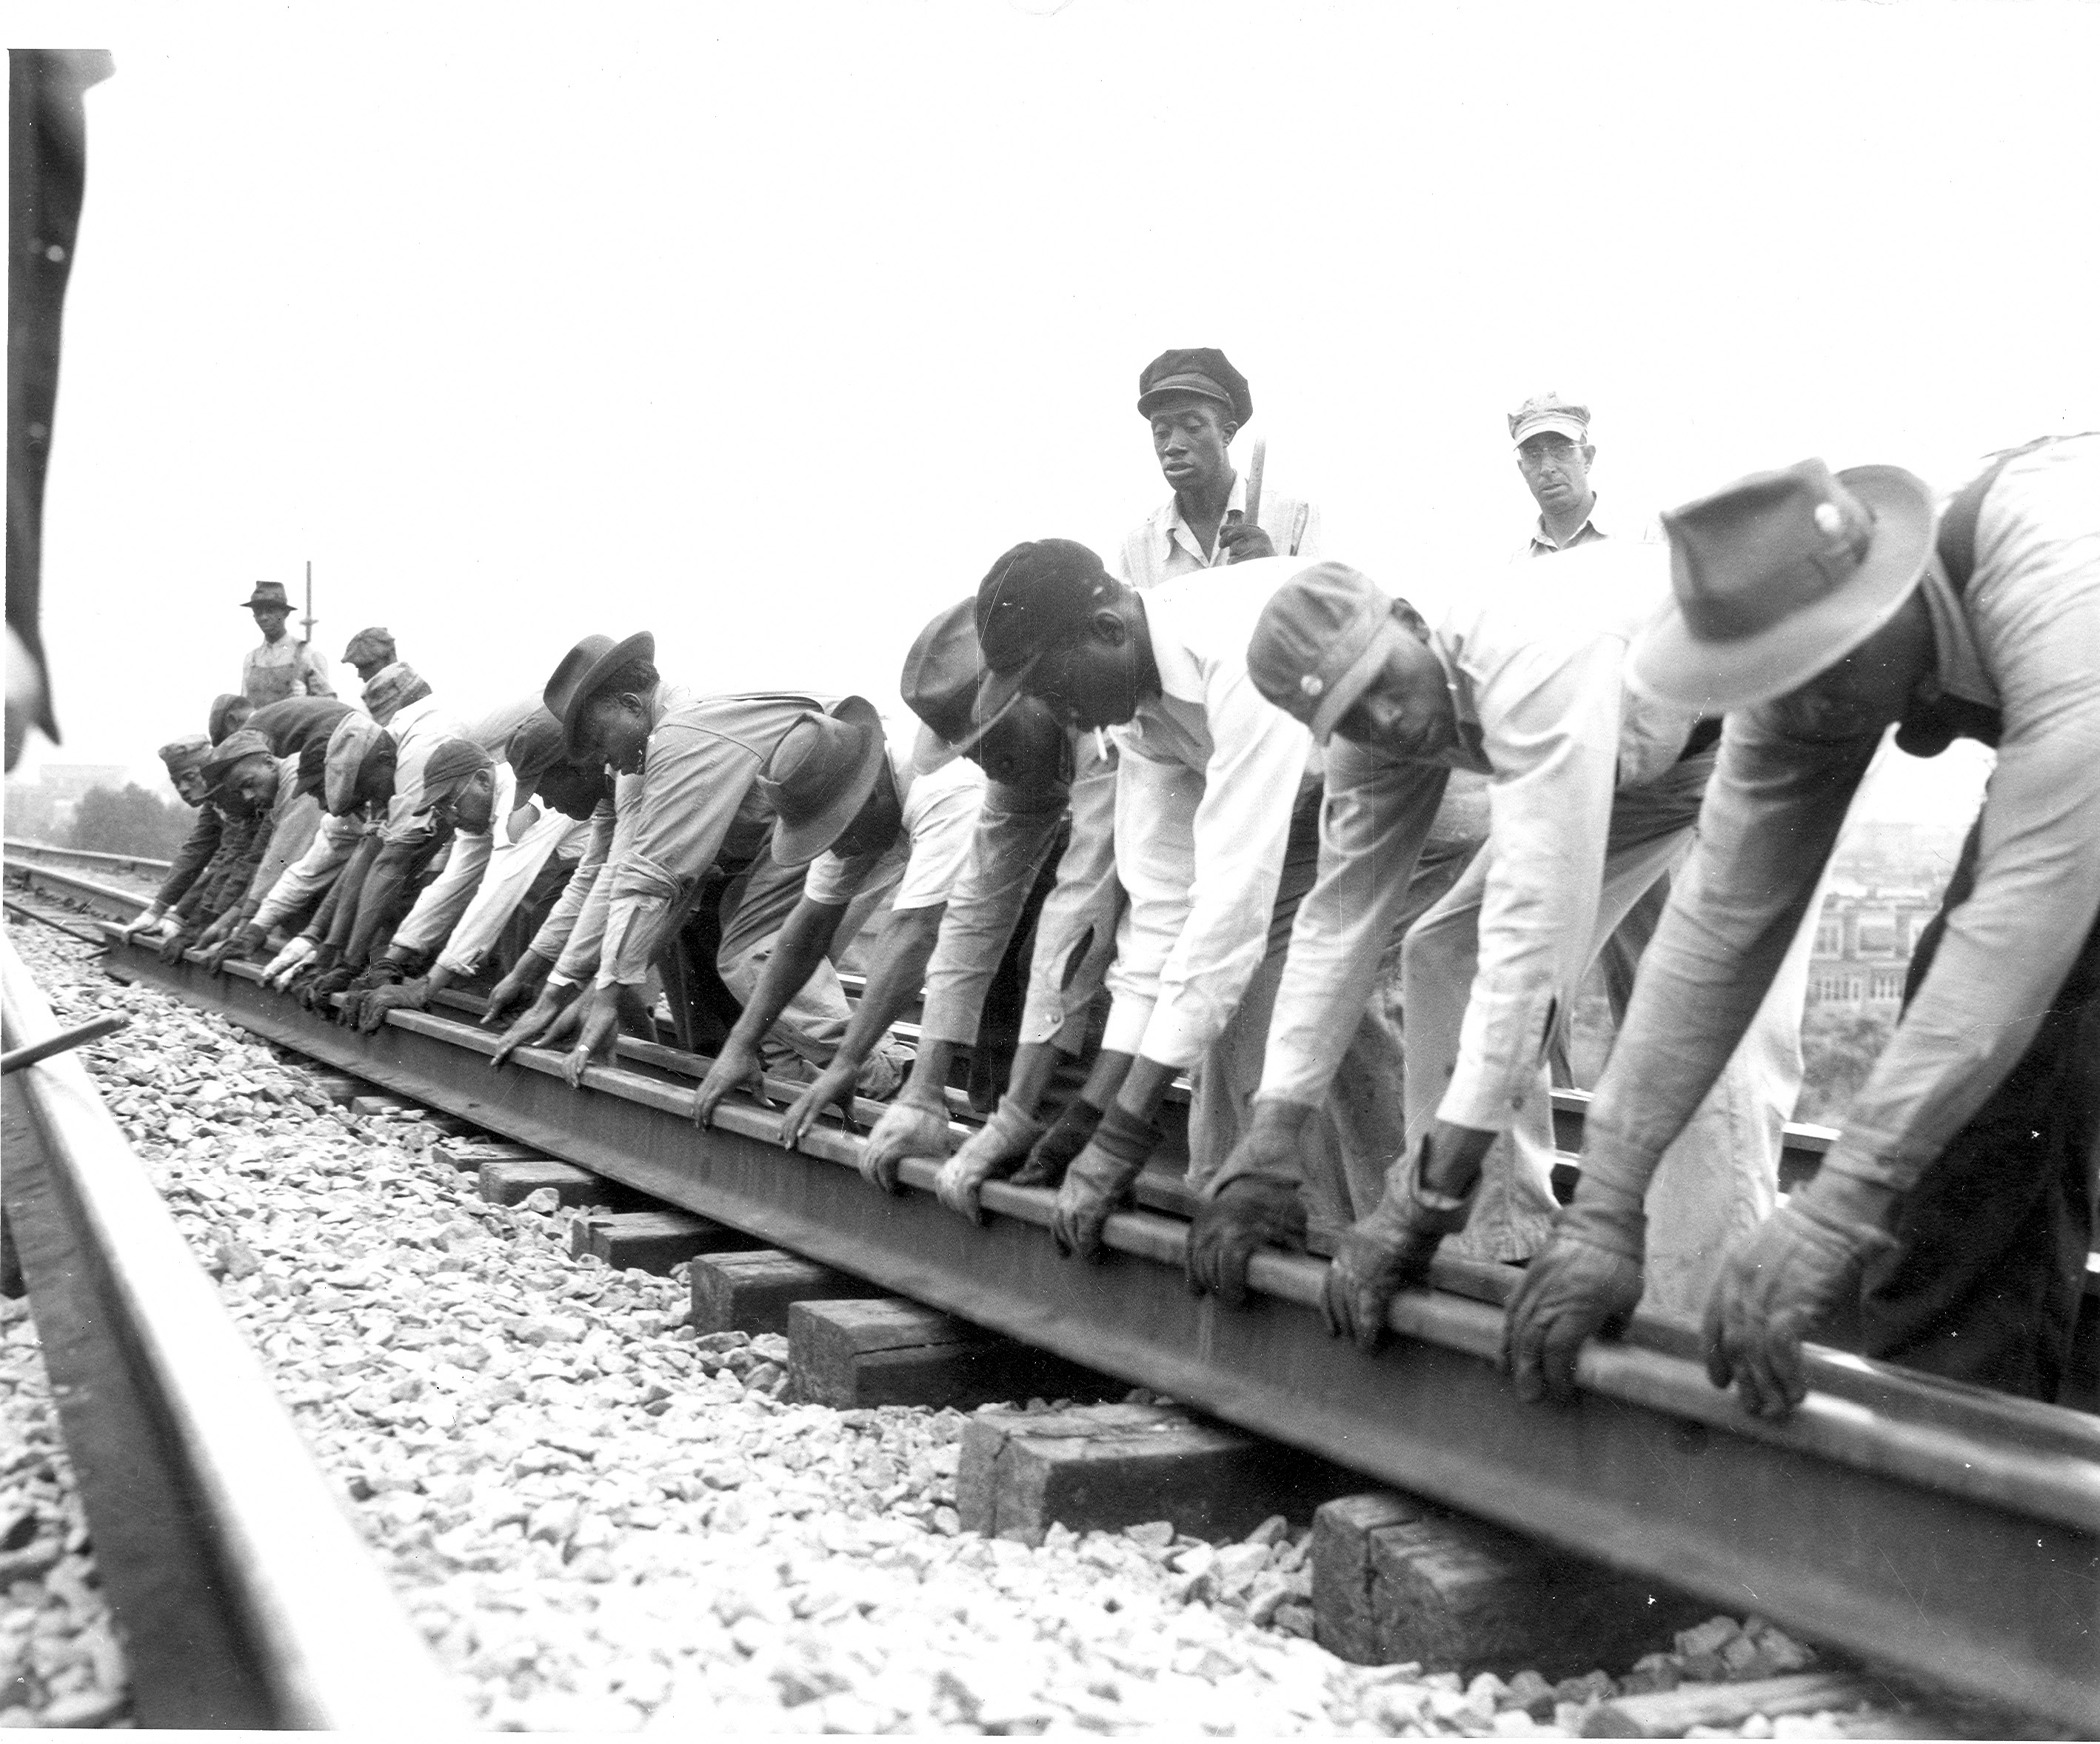 an overview of the construction of a railroad by the chinese workers in the united states The chinese exclusion act resulted in banning which group from immigrating to the united states chinese laborers during the construction of the first transcontinental railroad, the central pacific railroad started in california and built the railroad east to promontory point, utah, where it was connected with the railroad built from the east.